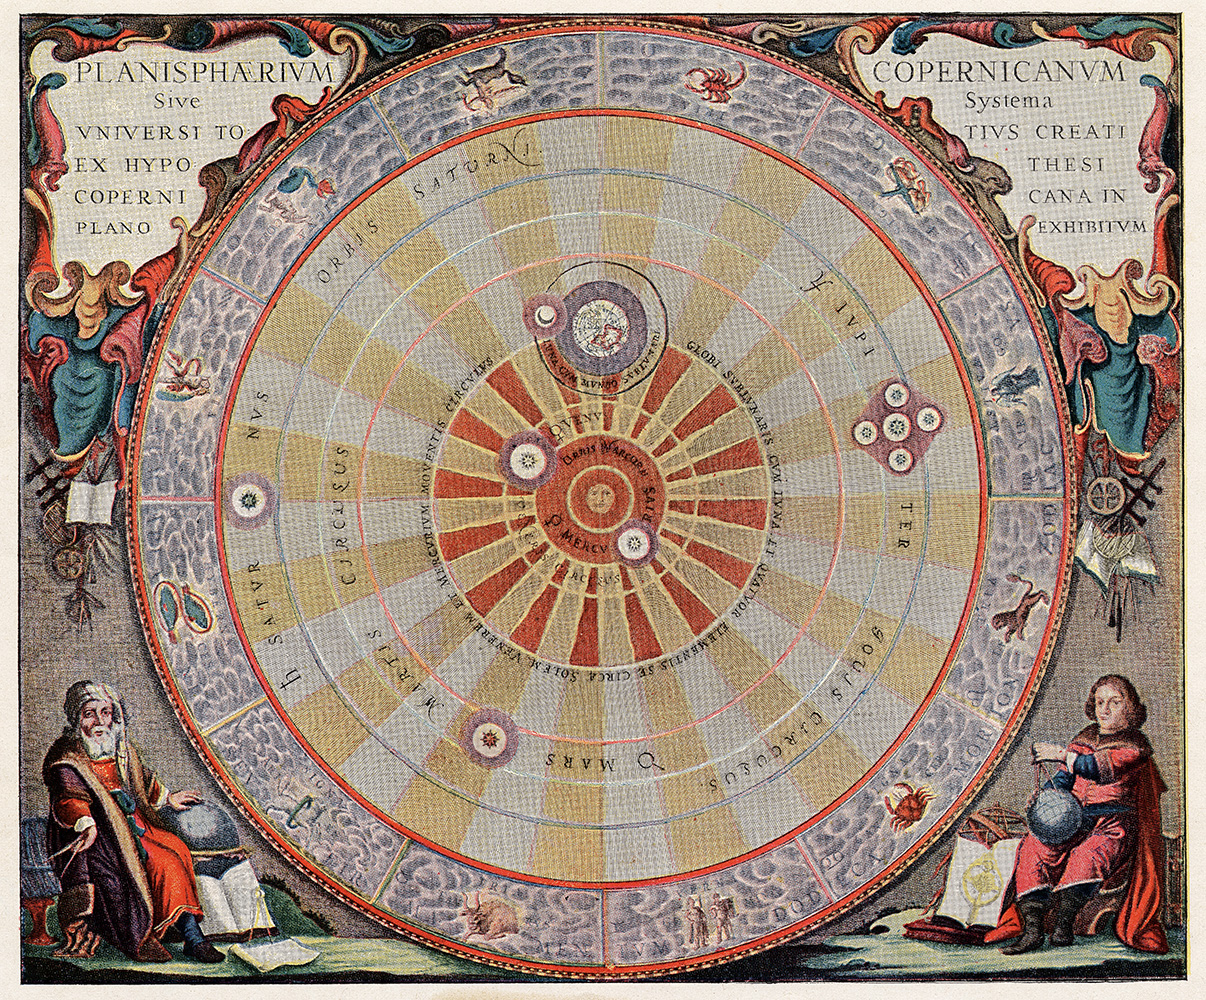 The Copernican system showing the planets orbiting the Sun. (Credit: Ullstein Bild/Getty Images)